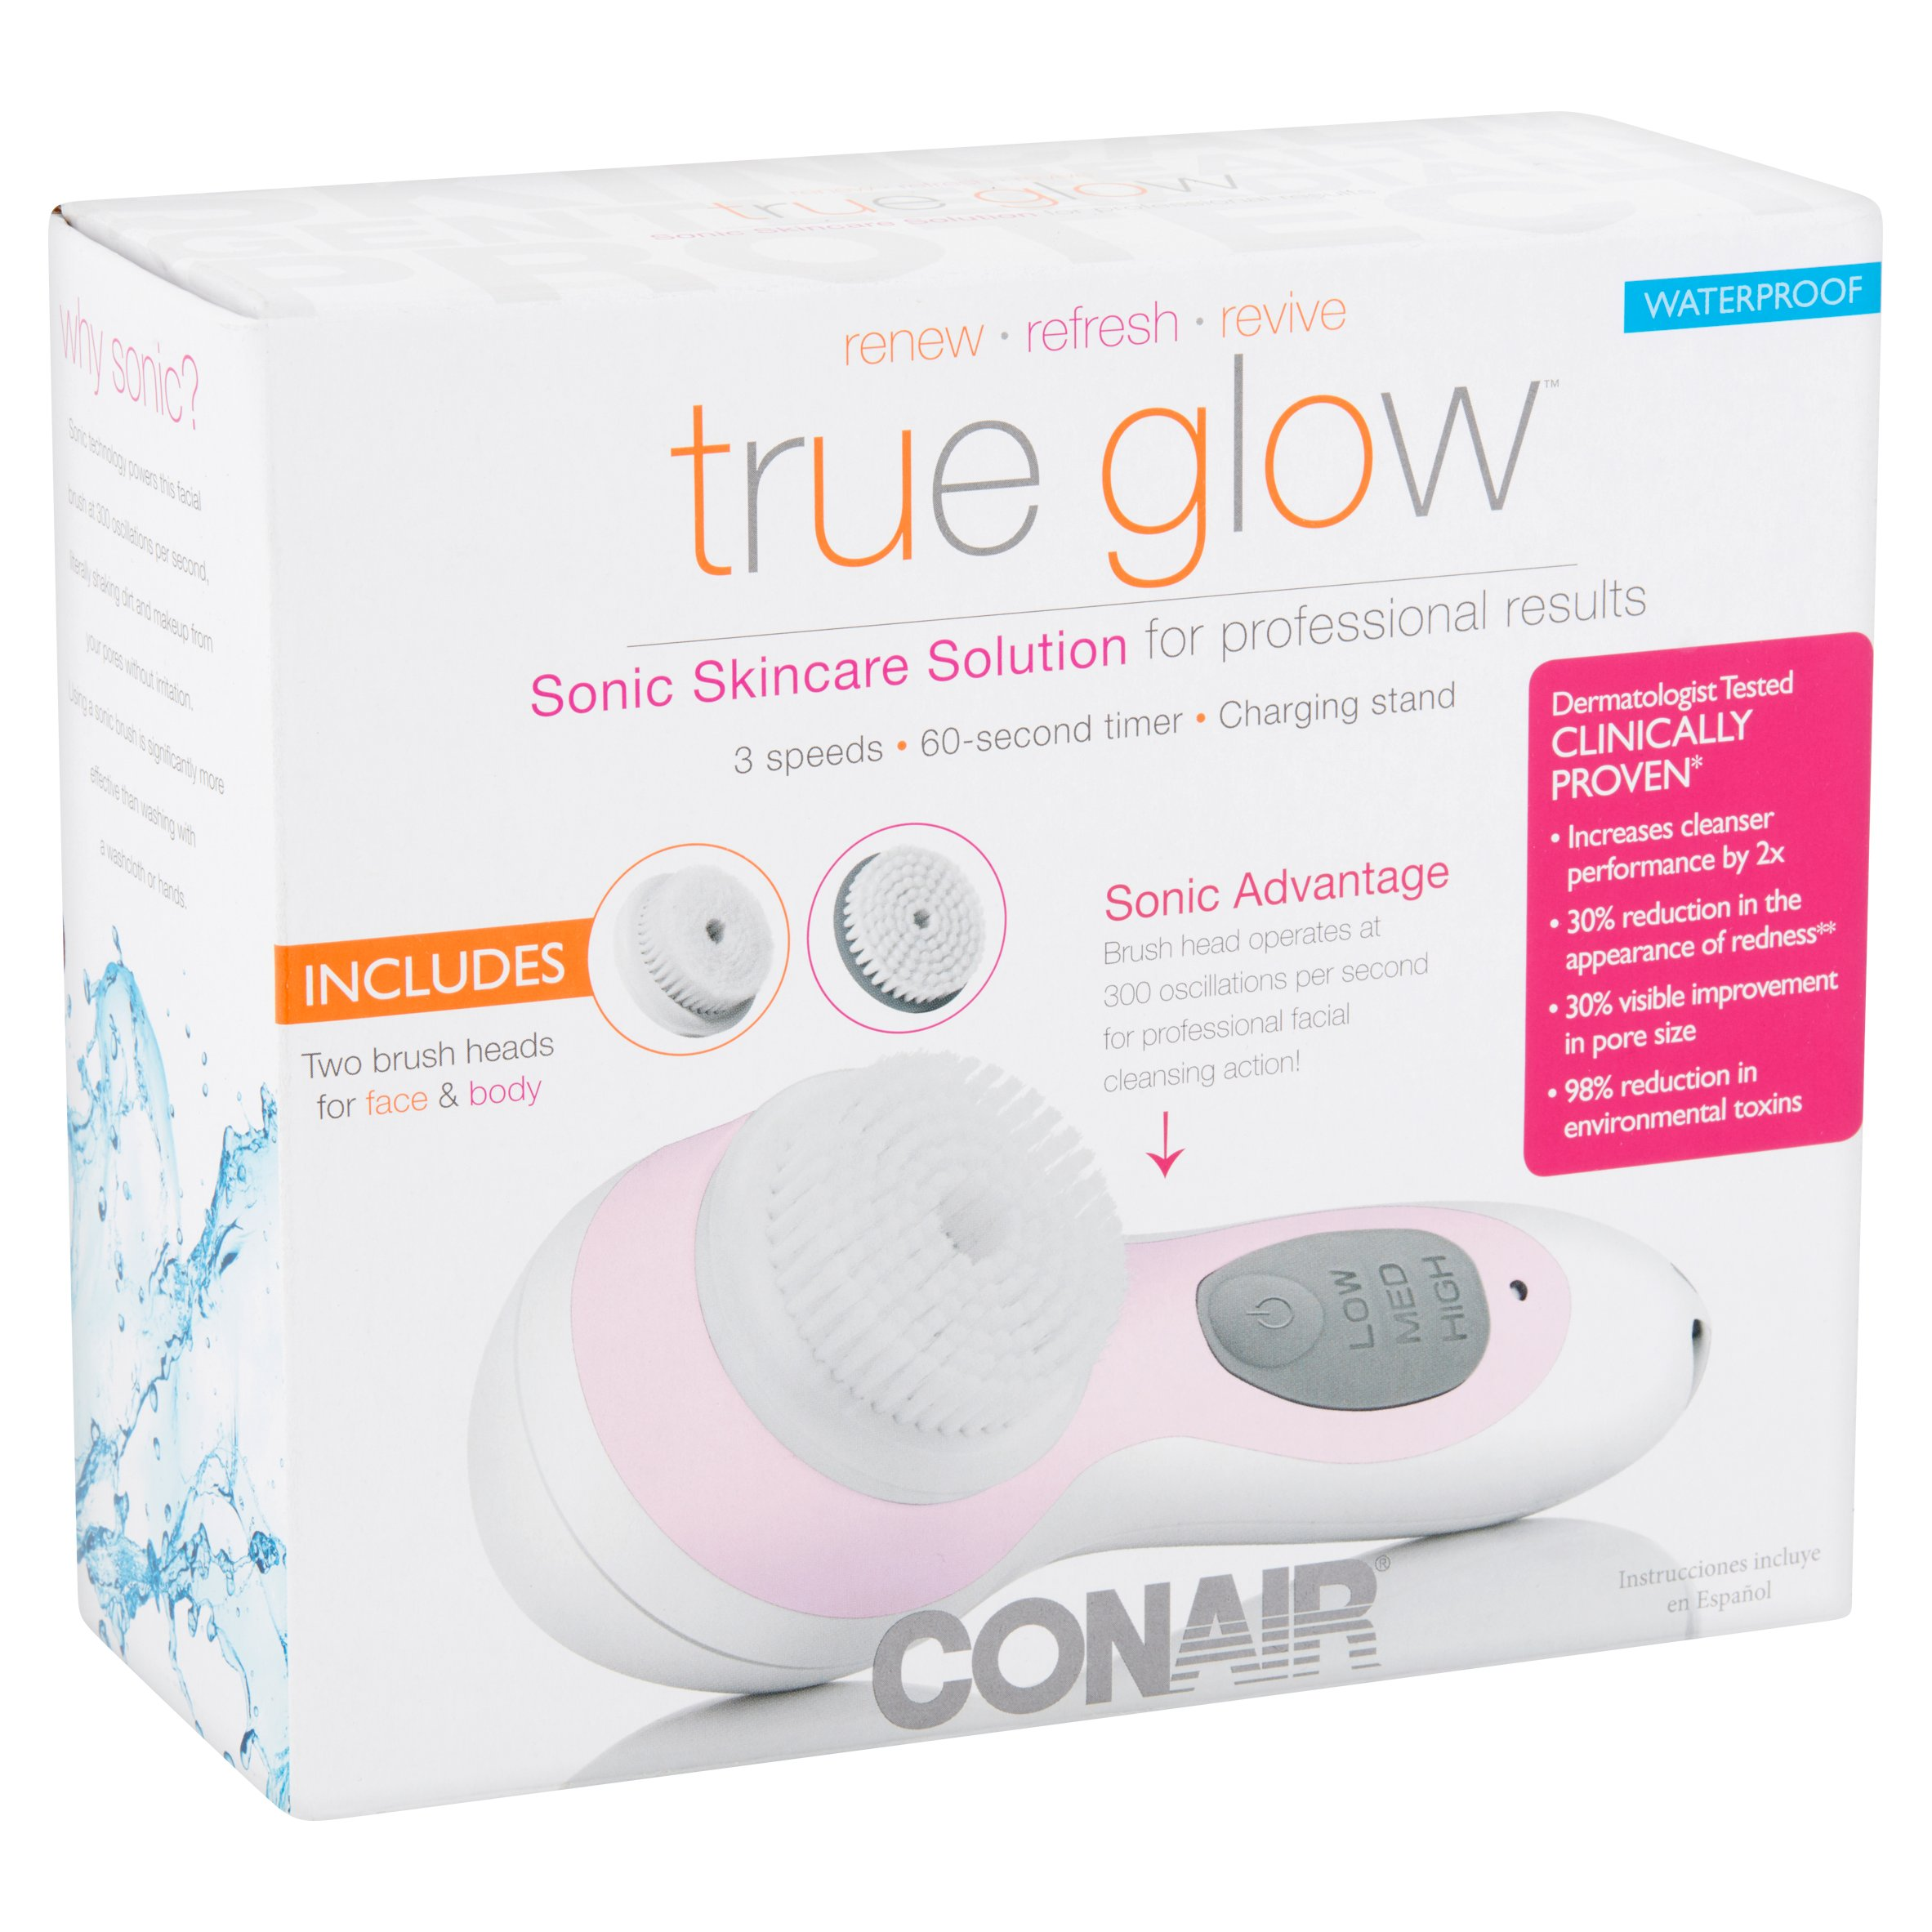 Conair True Glow Sonic Skincare Solution Brush, 4 pc - Walmart.com